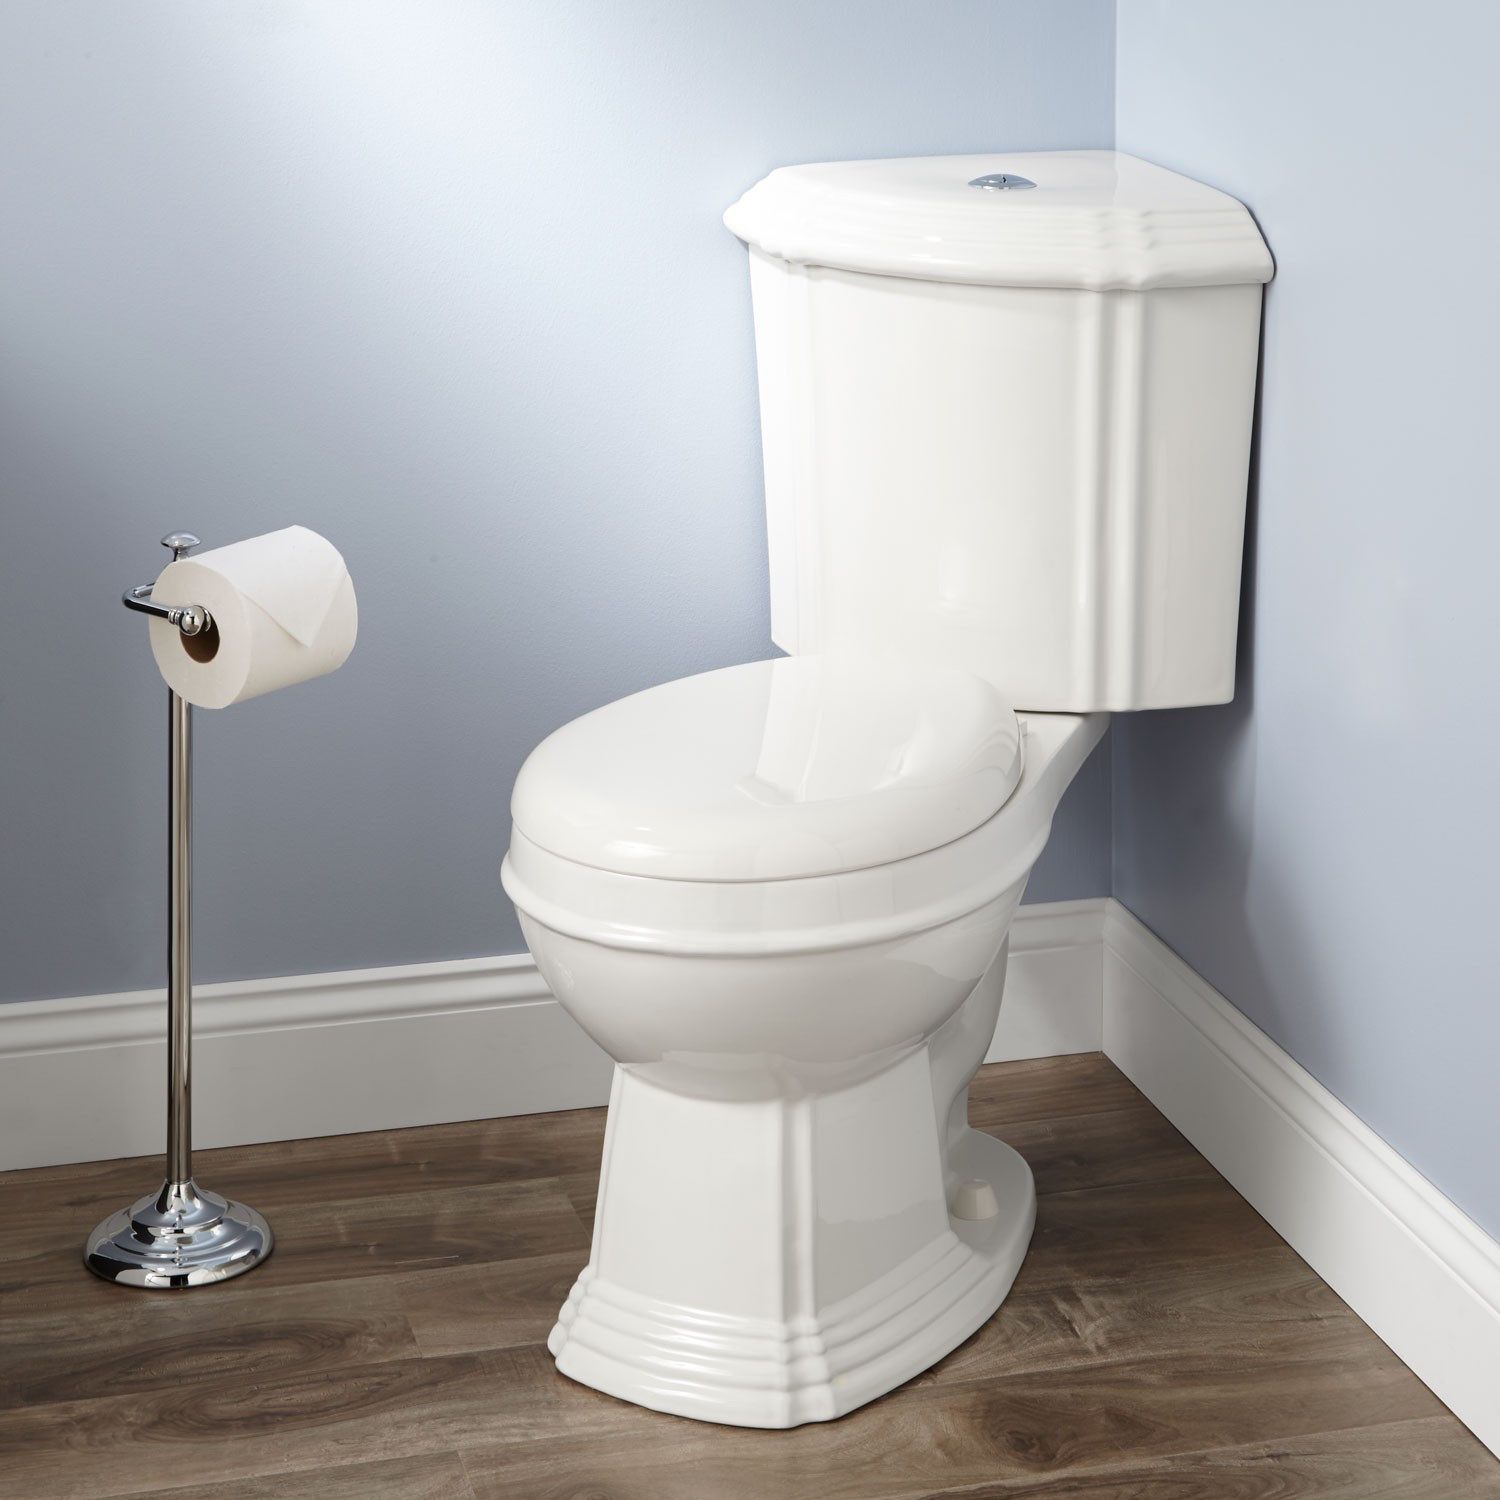 Install A Toilet How To Remove And Install Toilet Home Interior Design